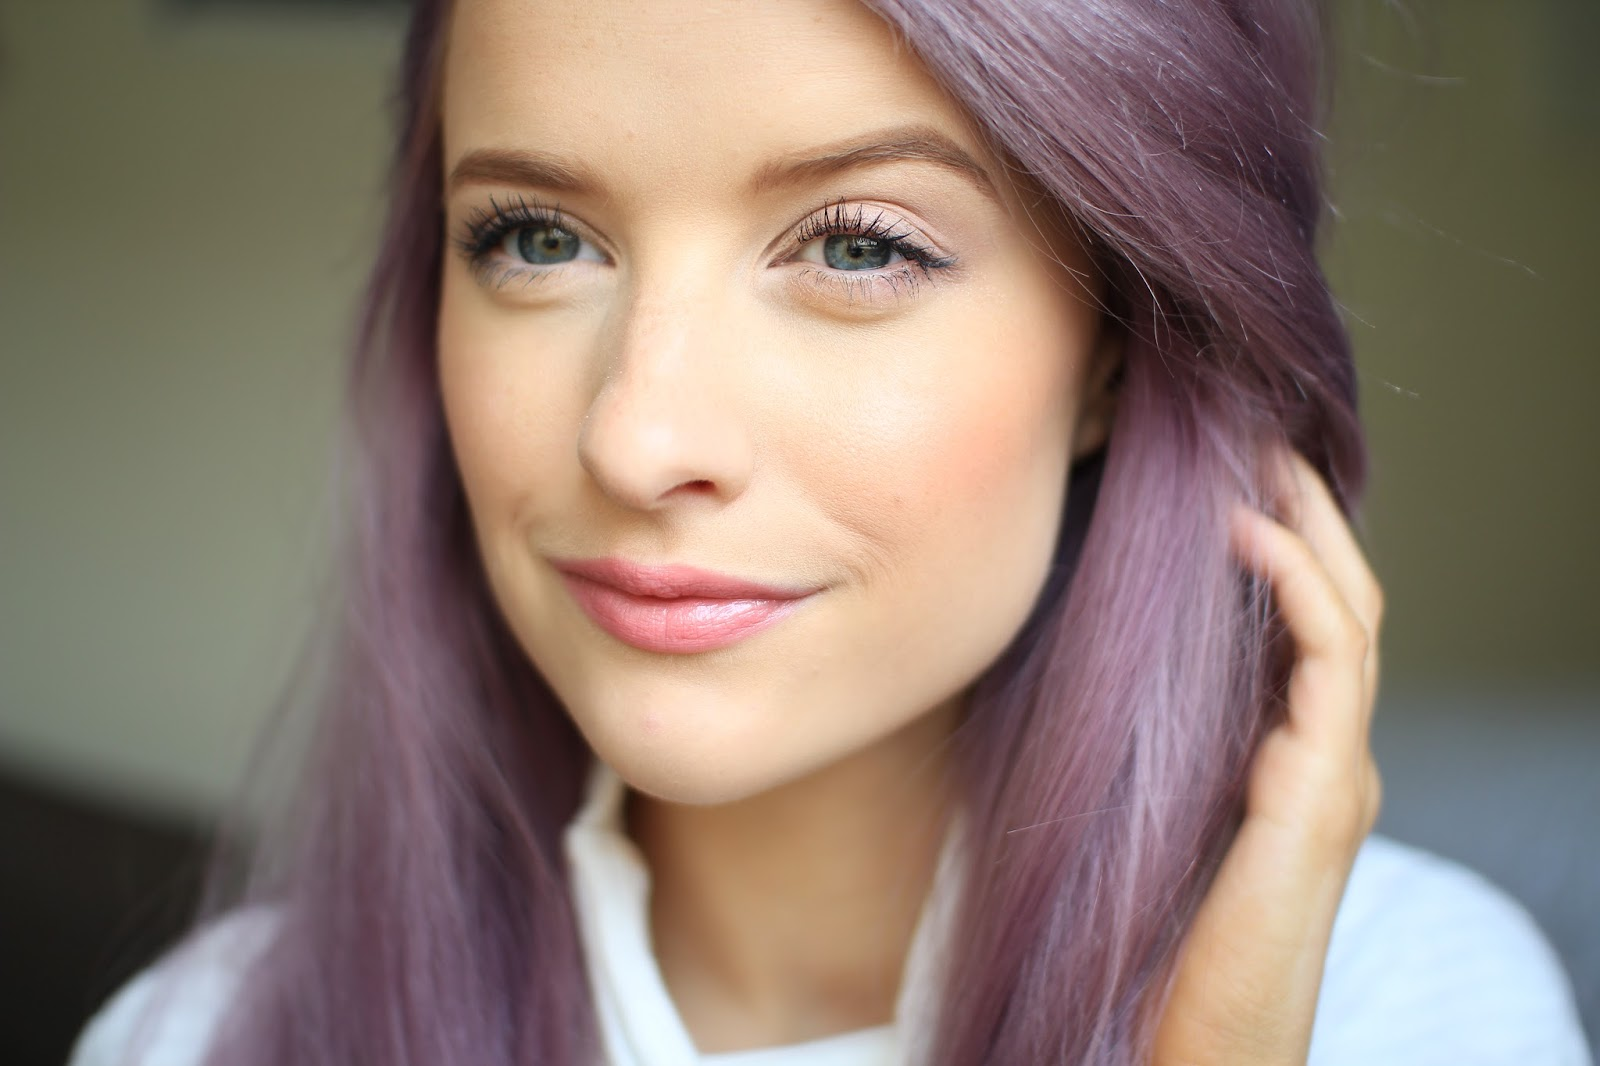 Chanel Rouge Coco Shine in Romance - Inthefrow